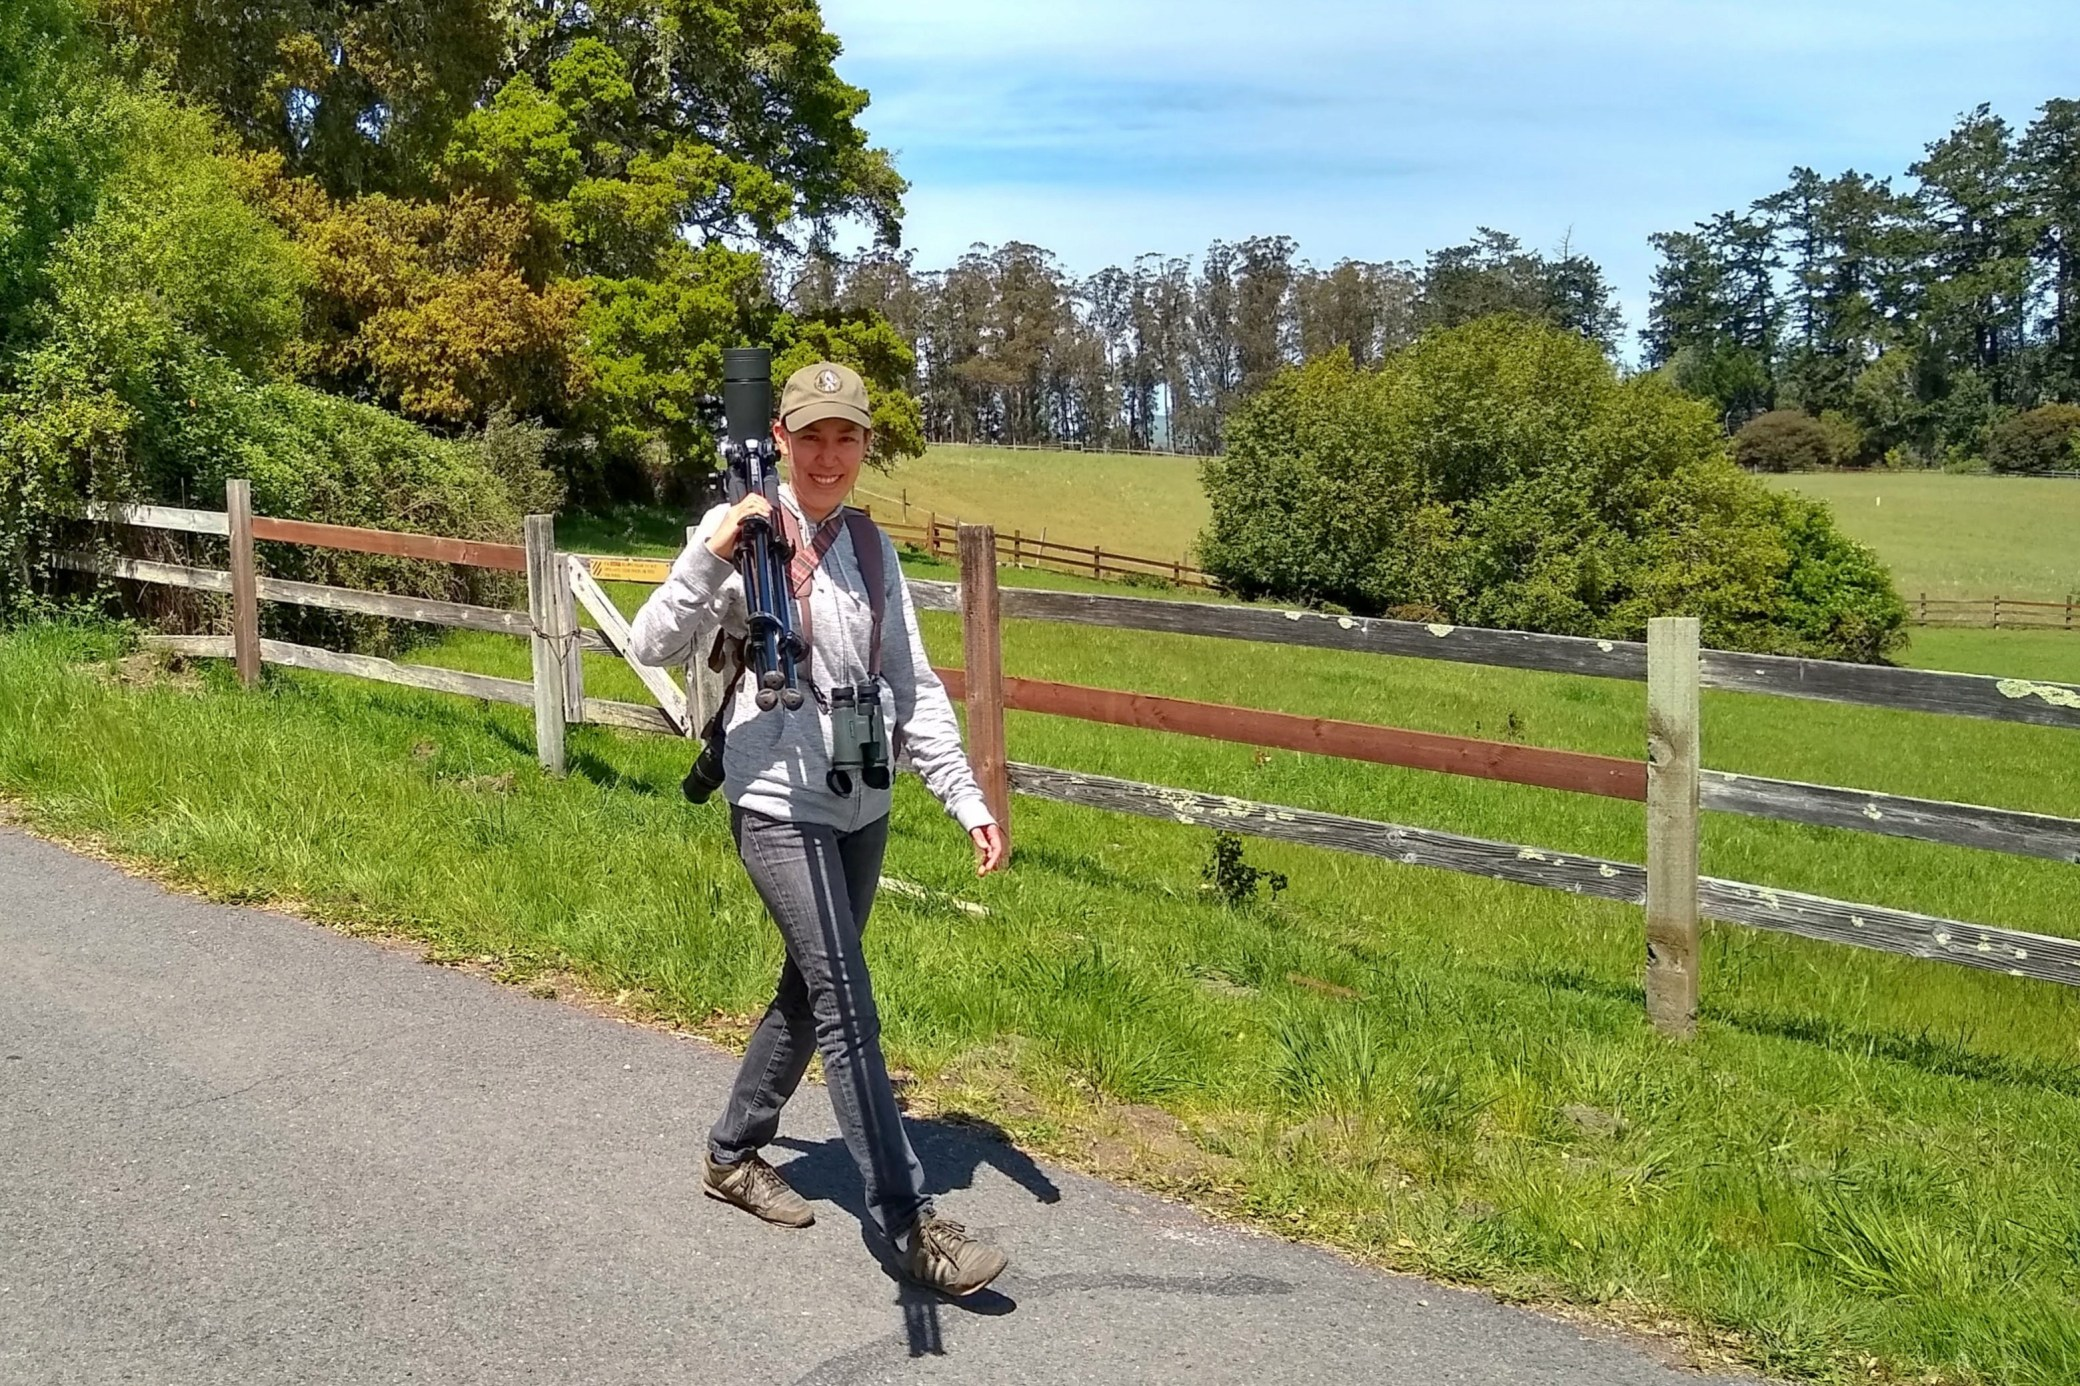 Read  Blog:  Marin County Birding: Woodpecker Trail, Point Reyes National Seashore